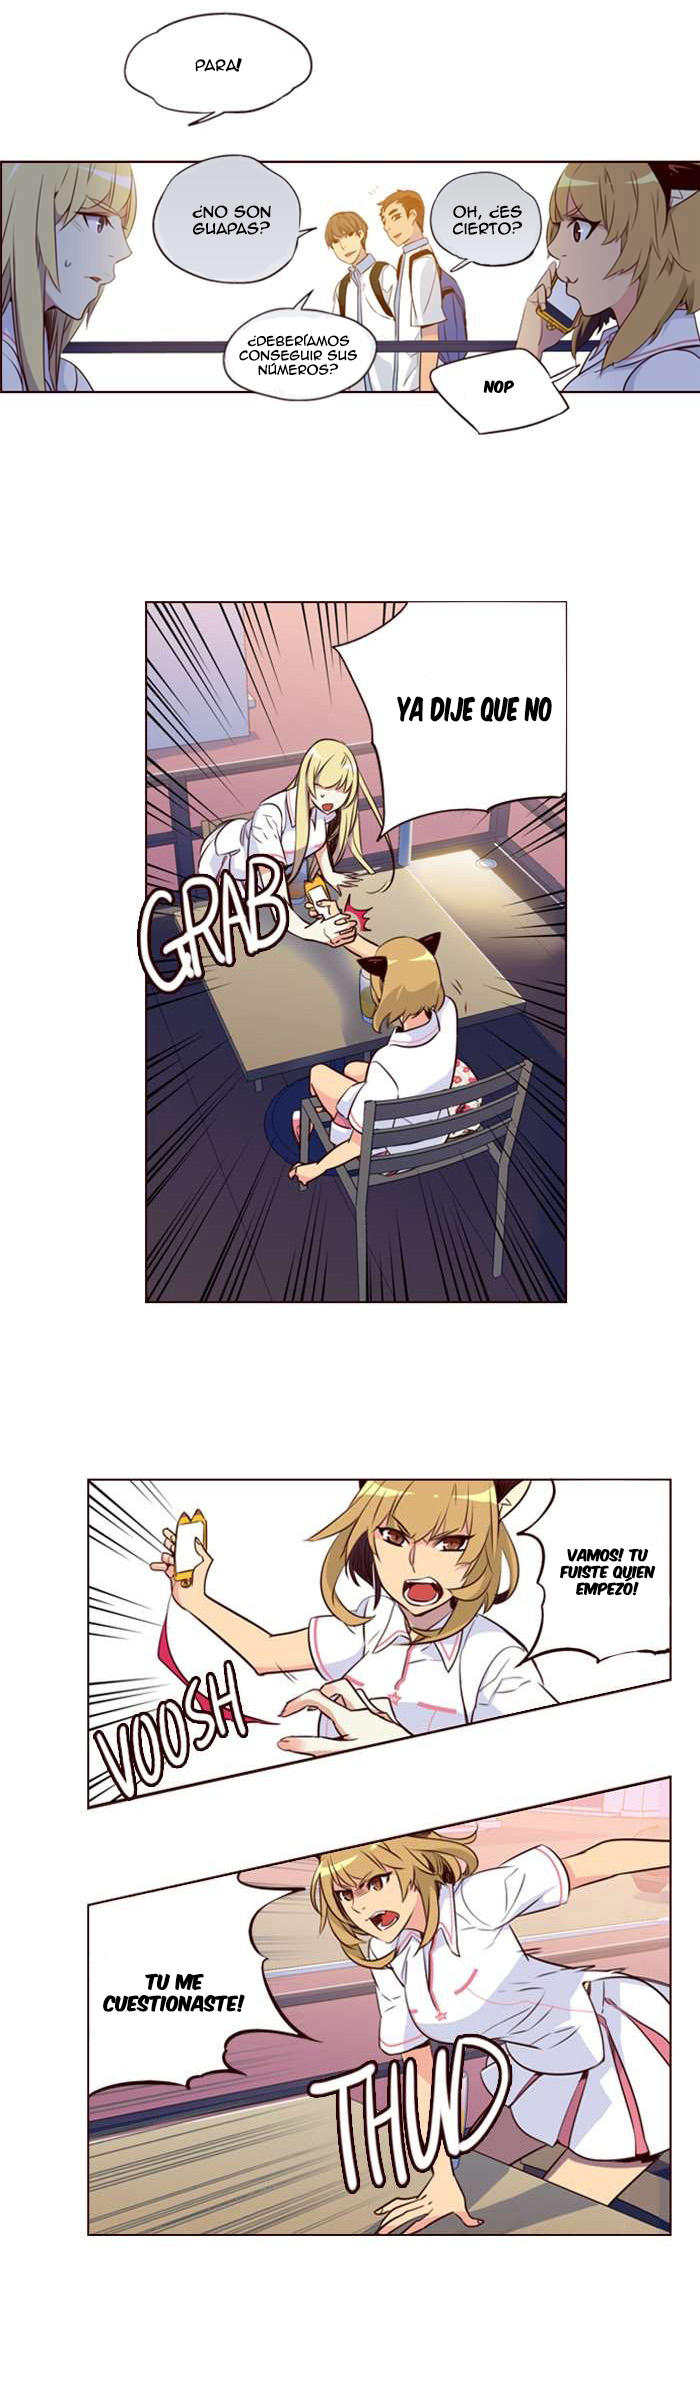 http://c5.ninemanga.com/es_manga/32/416/428937/7c8a25c47c40363518bc3df70047d152.jpg Page 5